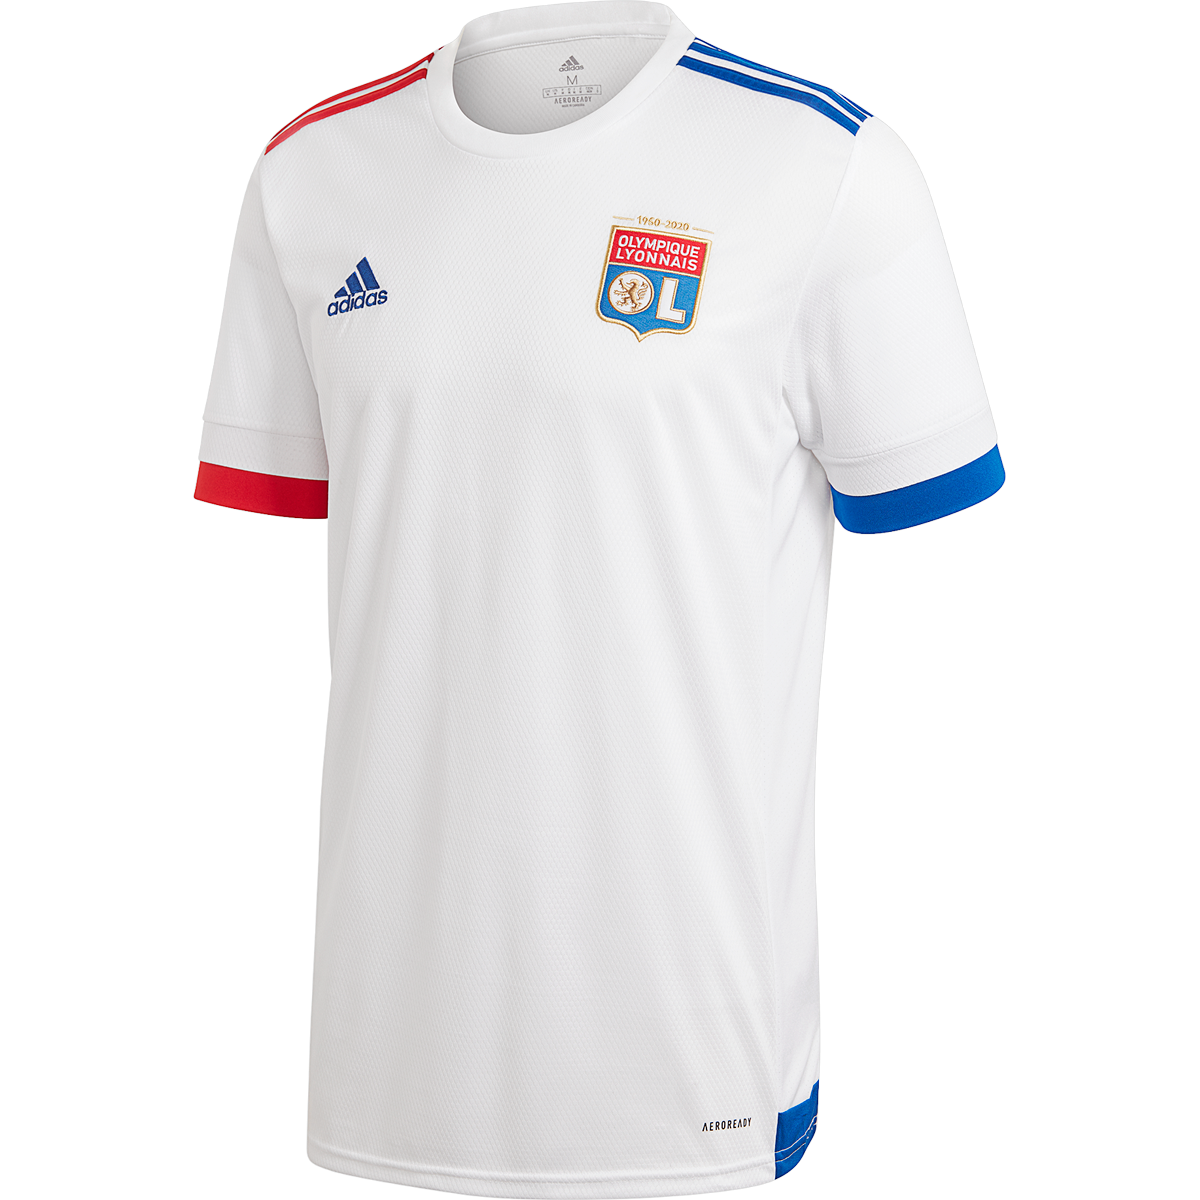 Adidas Olympique Lyonnais Home Jersey 20 21 S In 2020 Soccer Shirts Mens Tops One Team